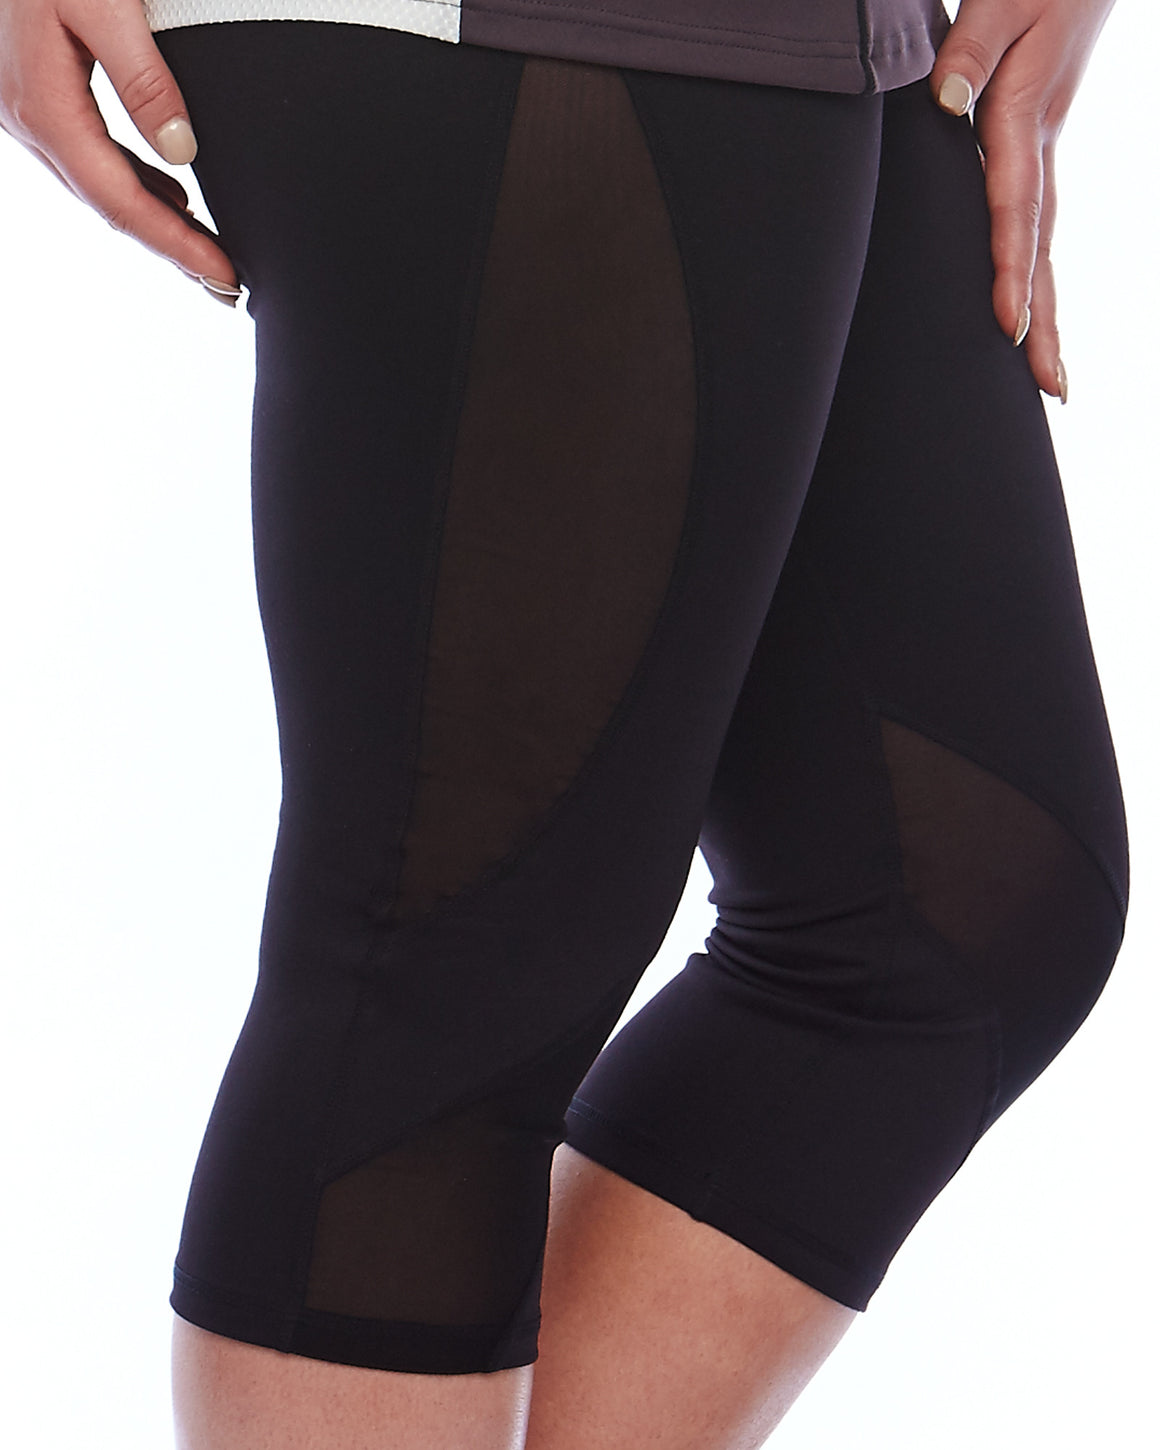 Mesh Sculpt Tights - Plus Size Activewear